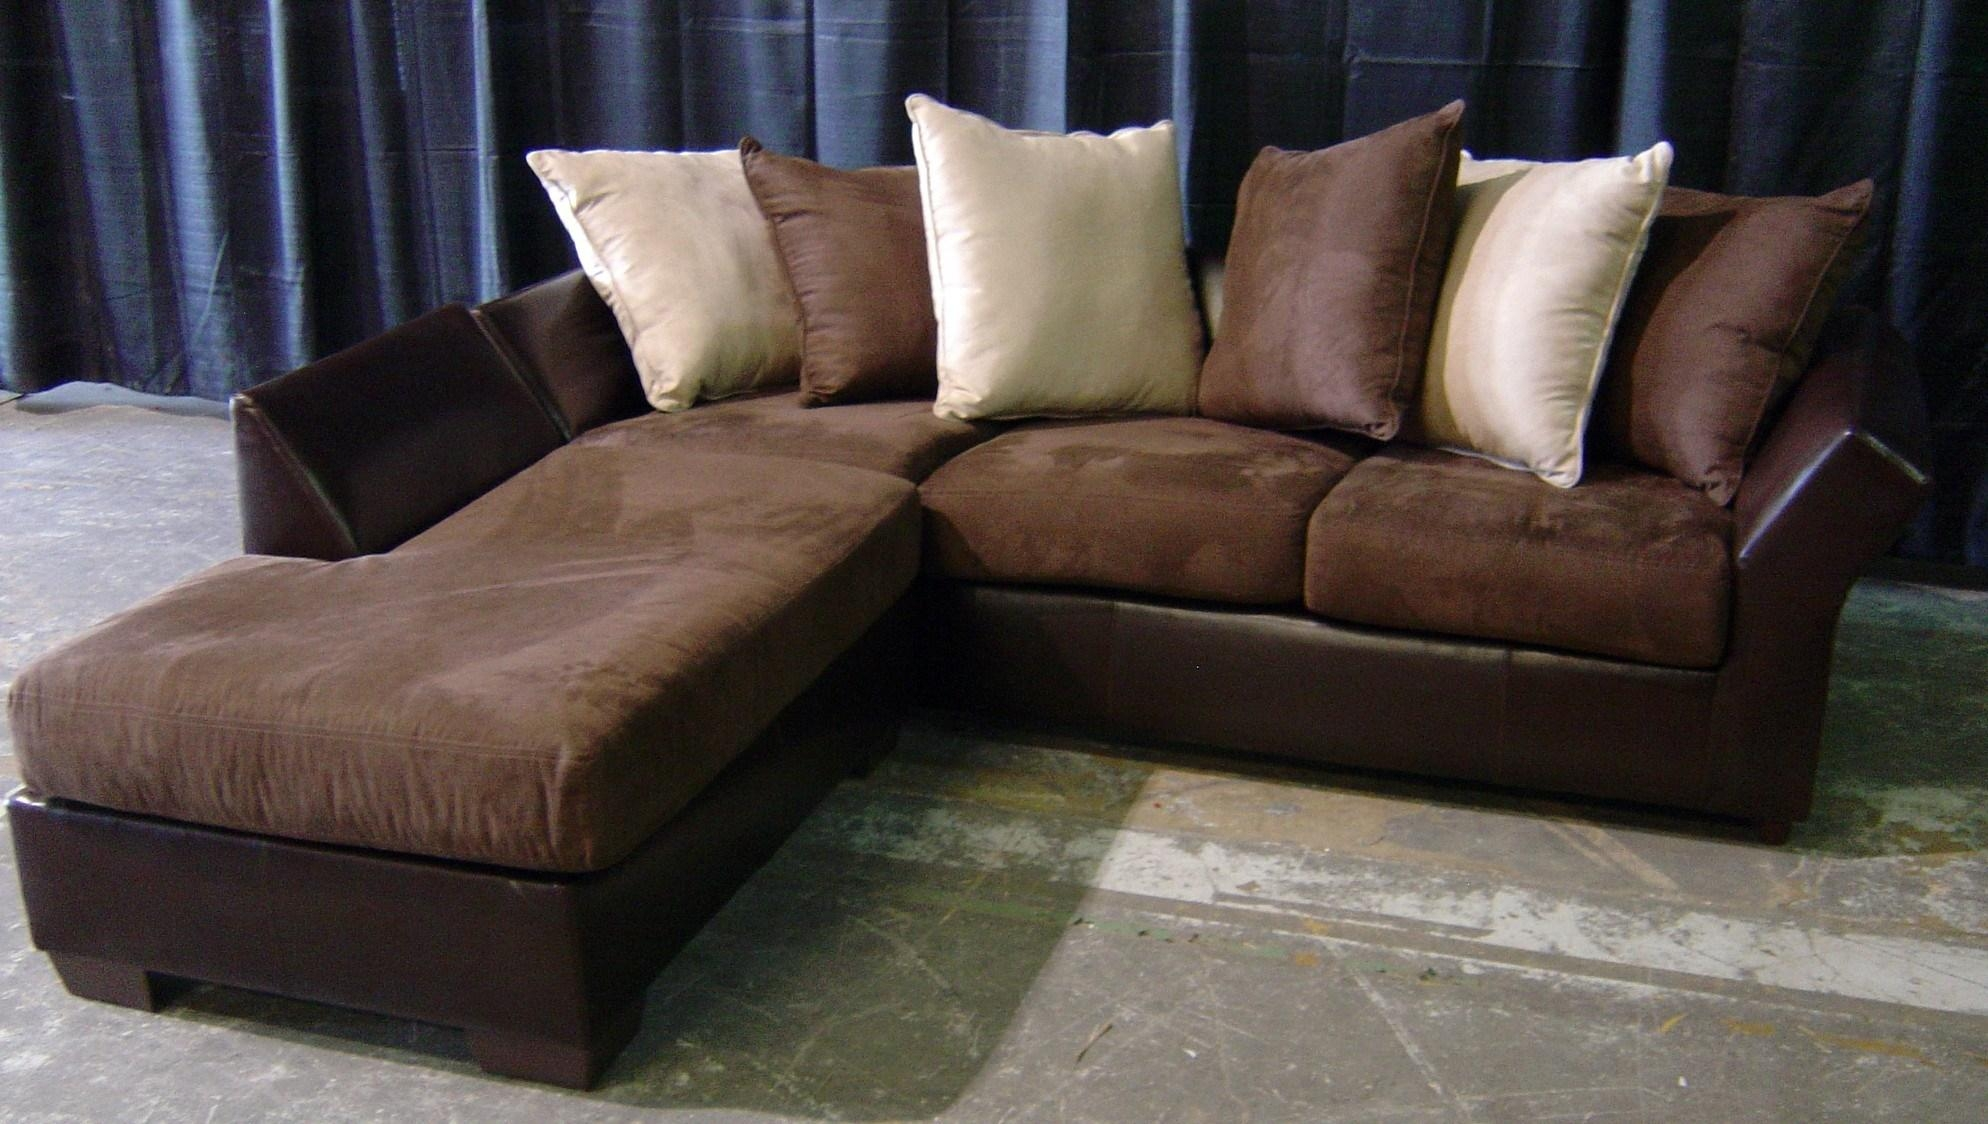 Furniture: Brown Leather Sectional Couchescraigslist Missoula Pertaining To Craigslist Sectional (View 2 of 15)